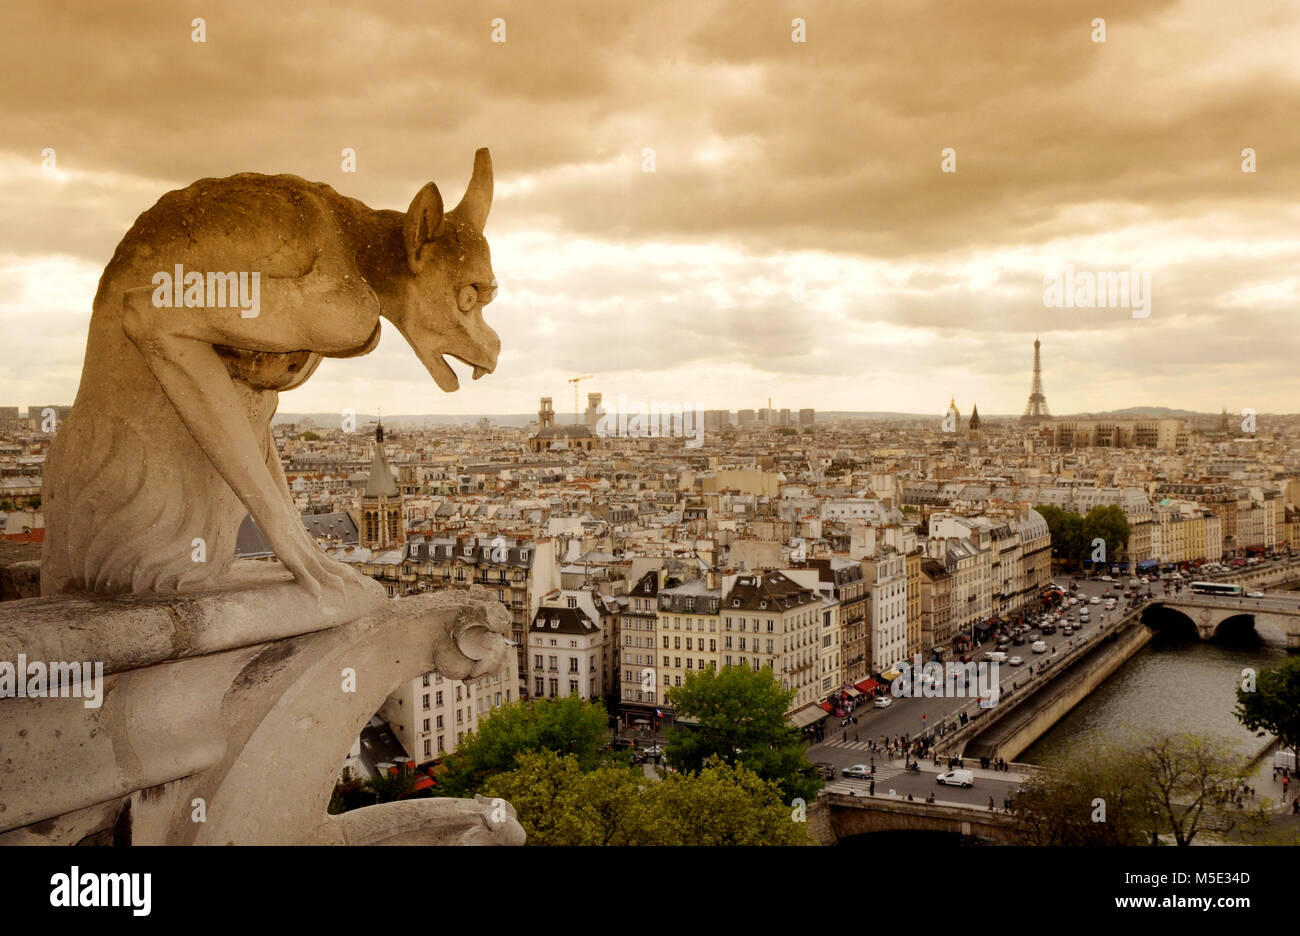 A stone demon gargoyle, statue on the Notre Dame Cathedral,Paris, France - Stock Image